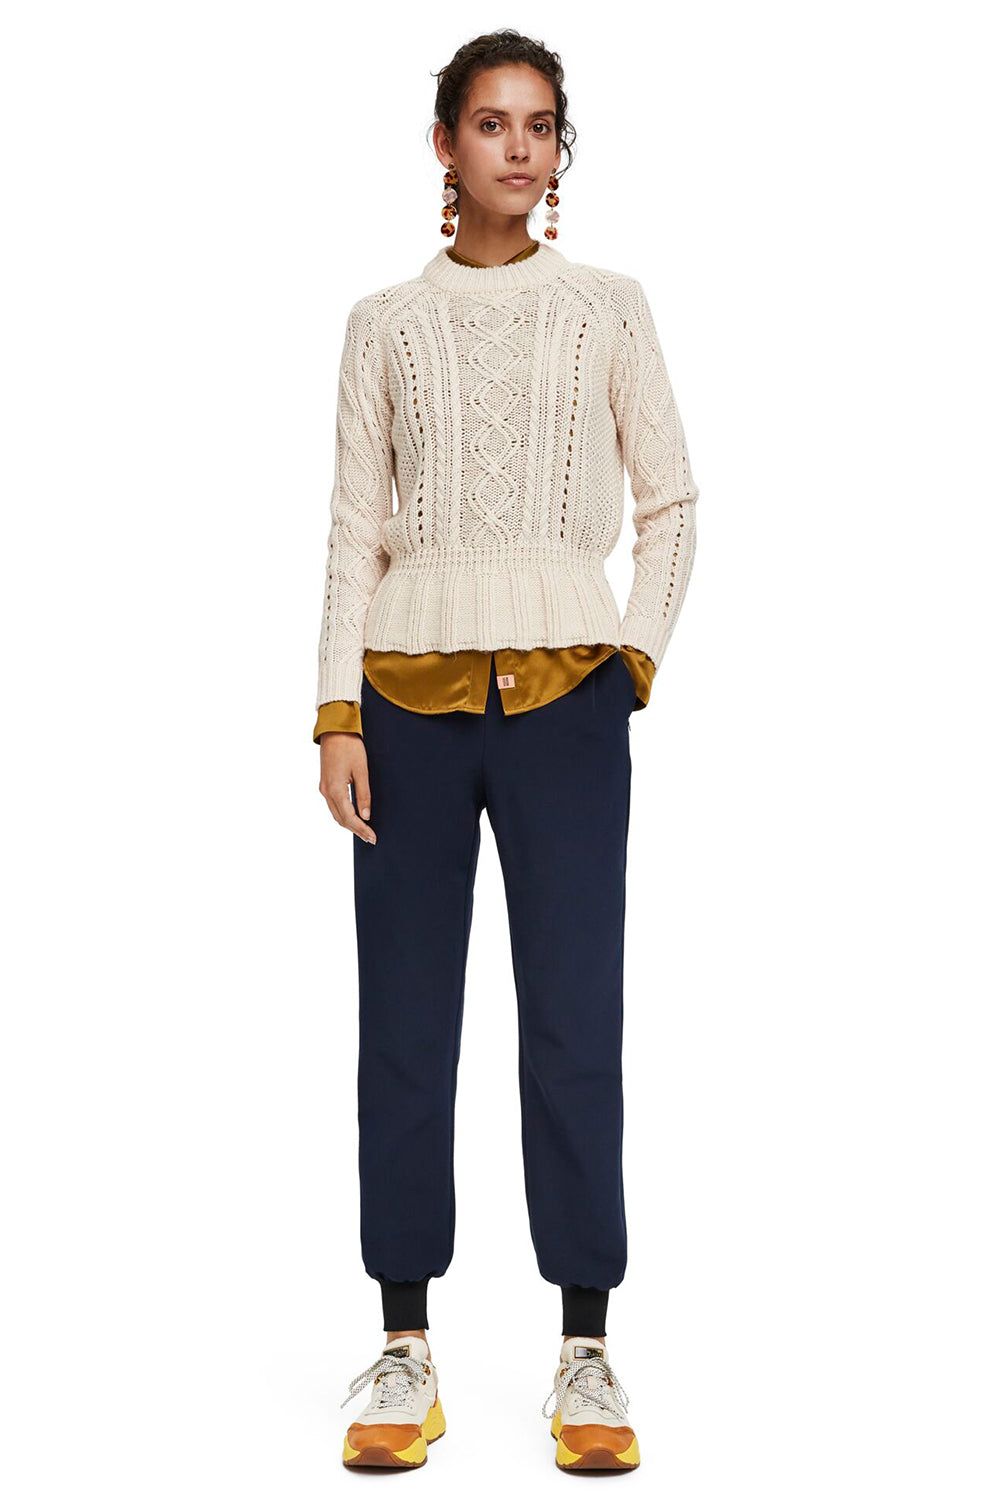 Maison Scotch / Drapey Pants With Rib Cuffs / Night